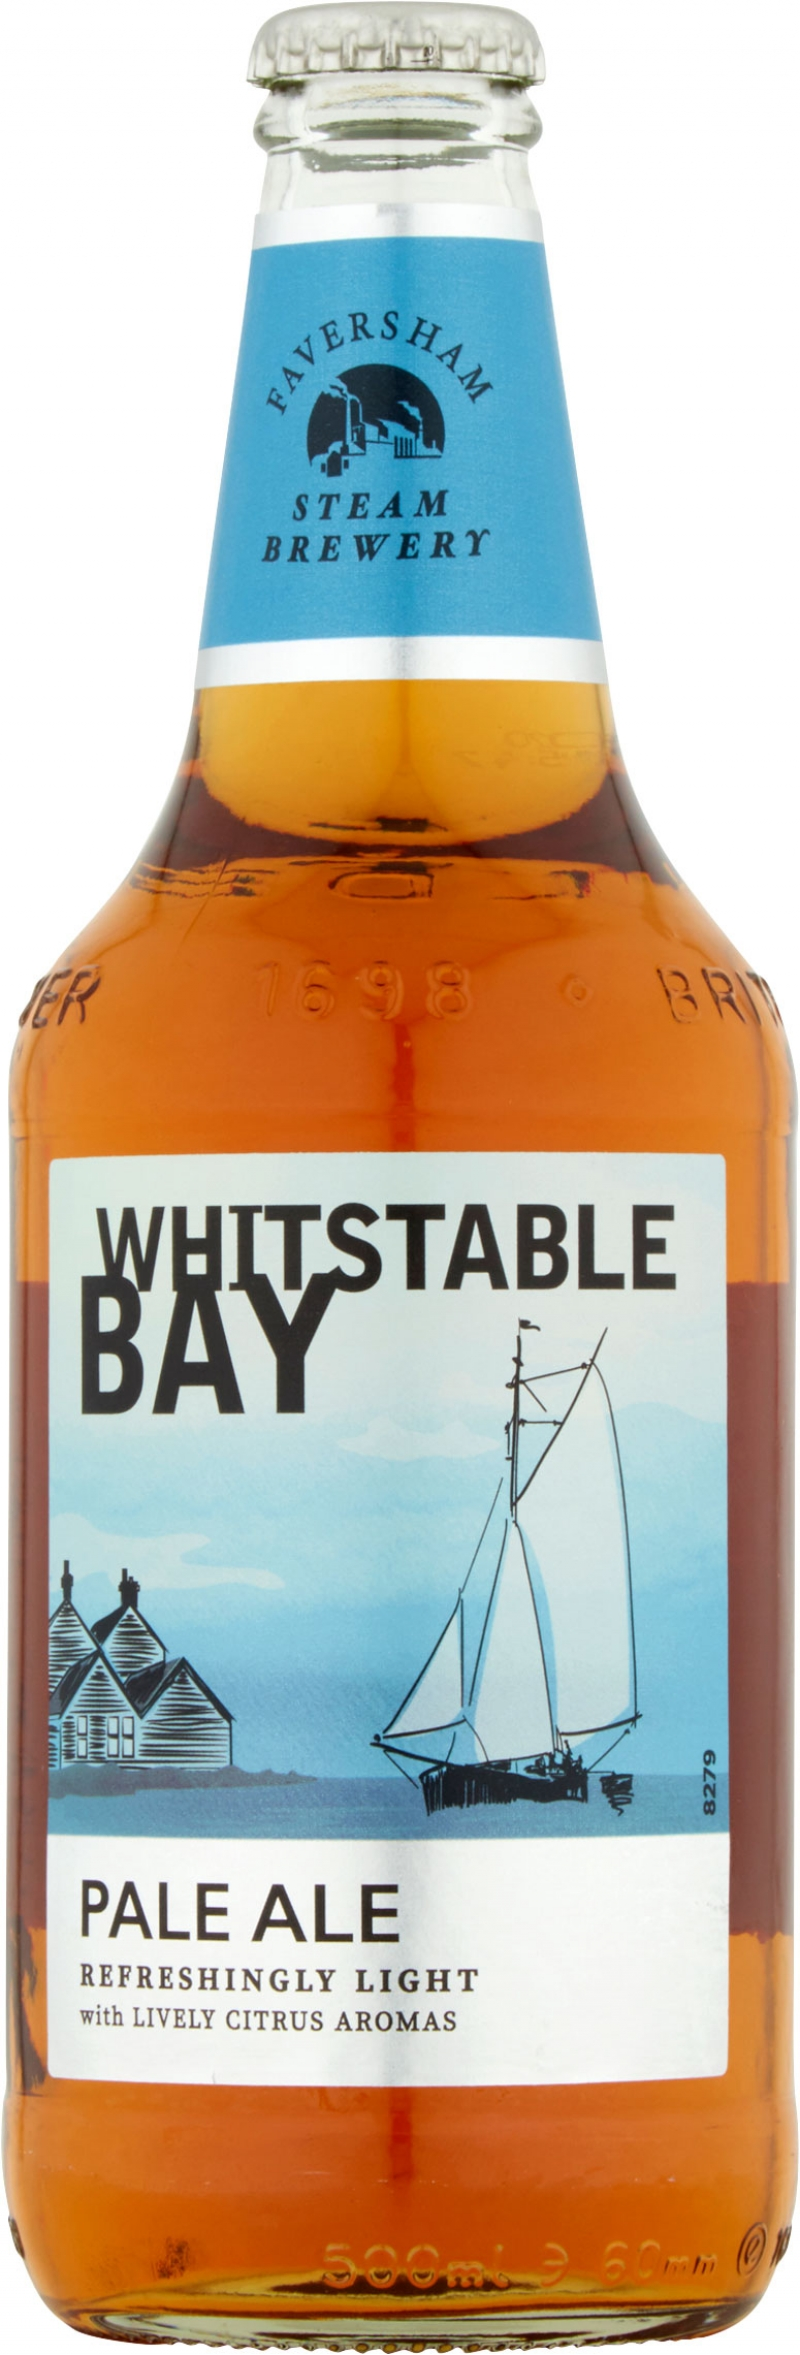 Whitstable Bay - Pale Ale (8x 500ml Bottles)